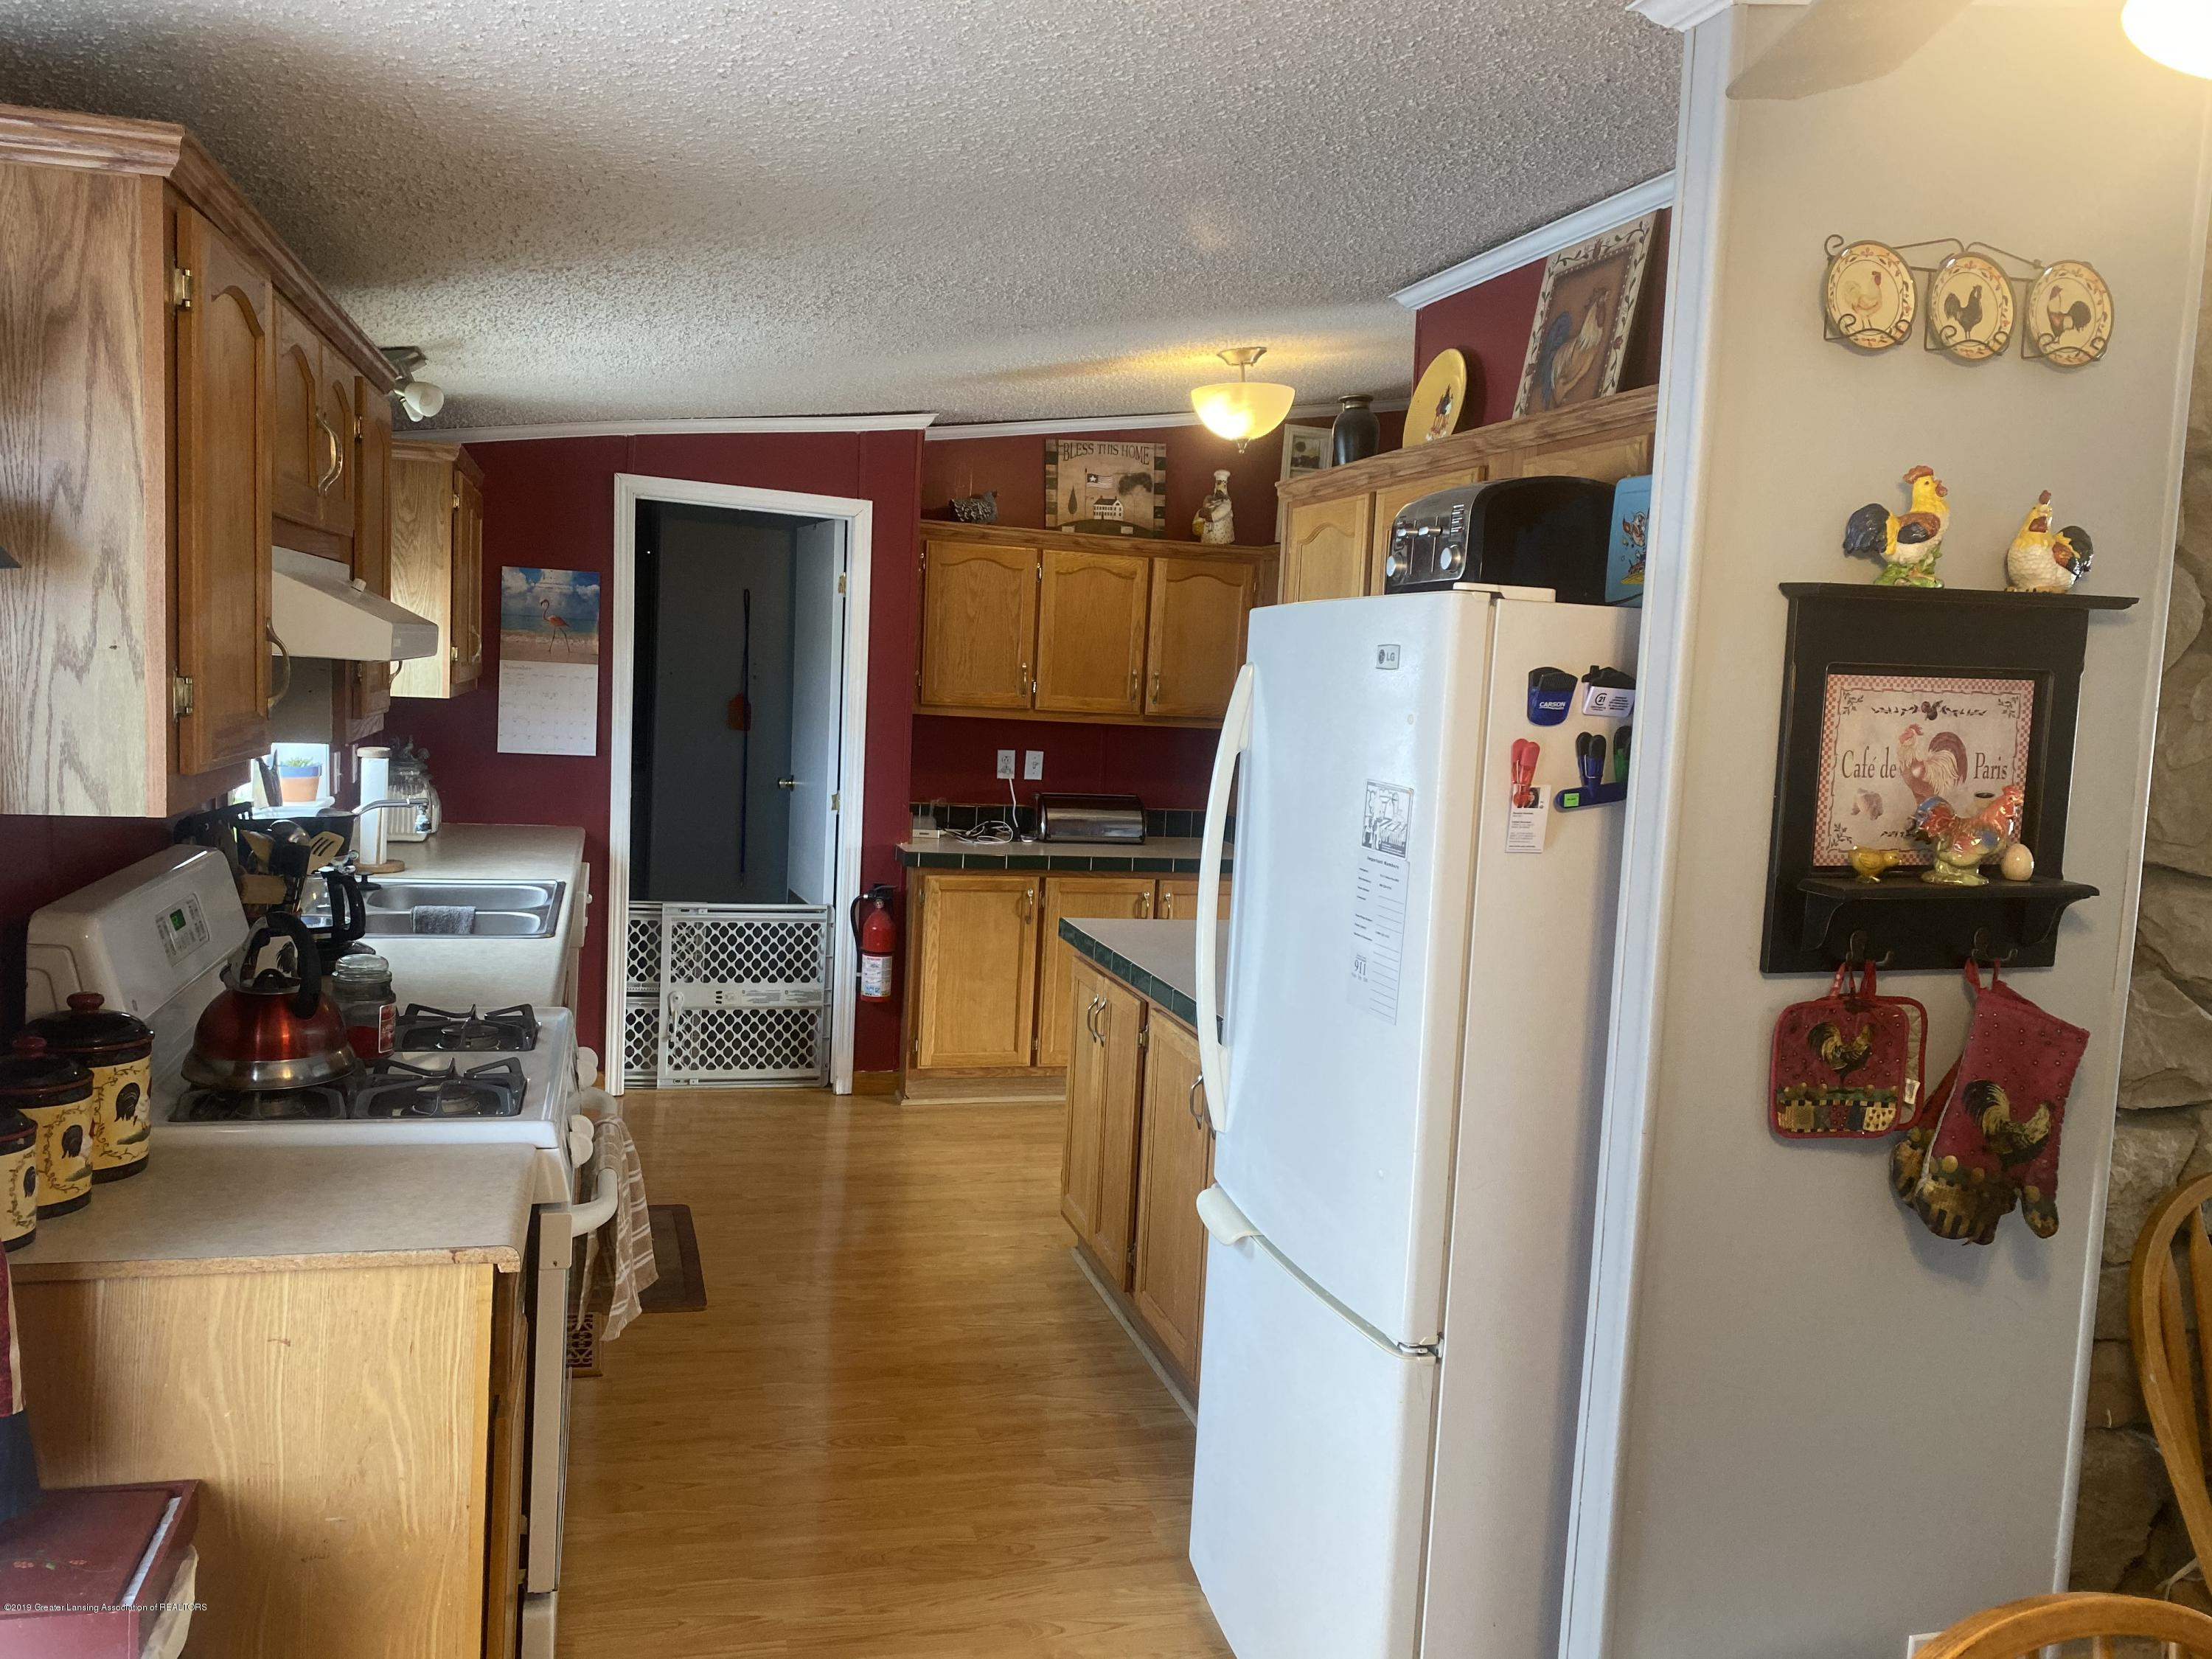 6869 N Welling Rd - KitchenMud - 14